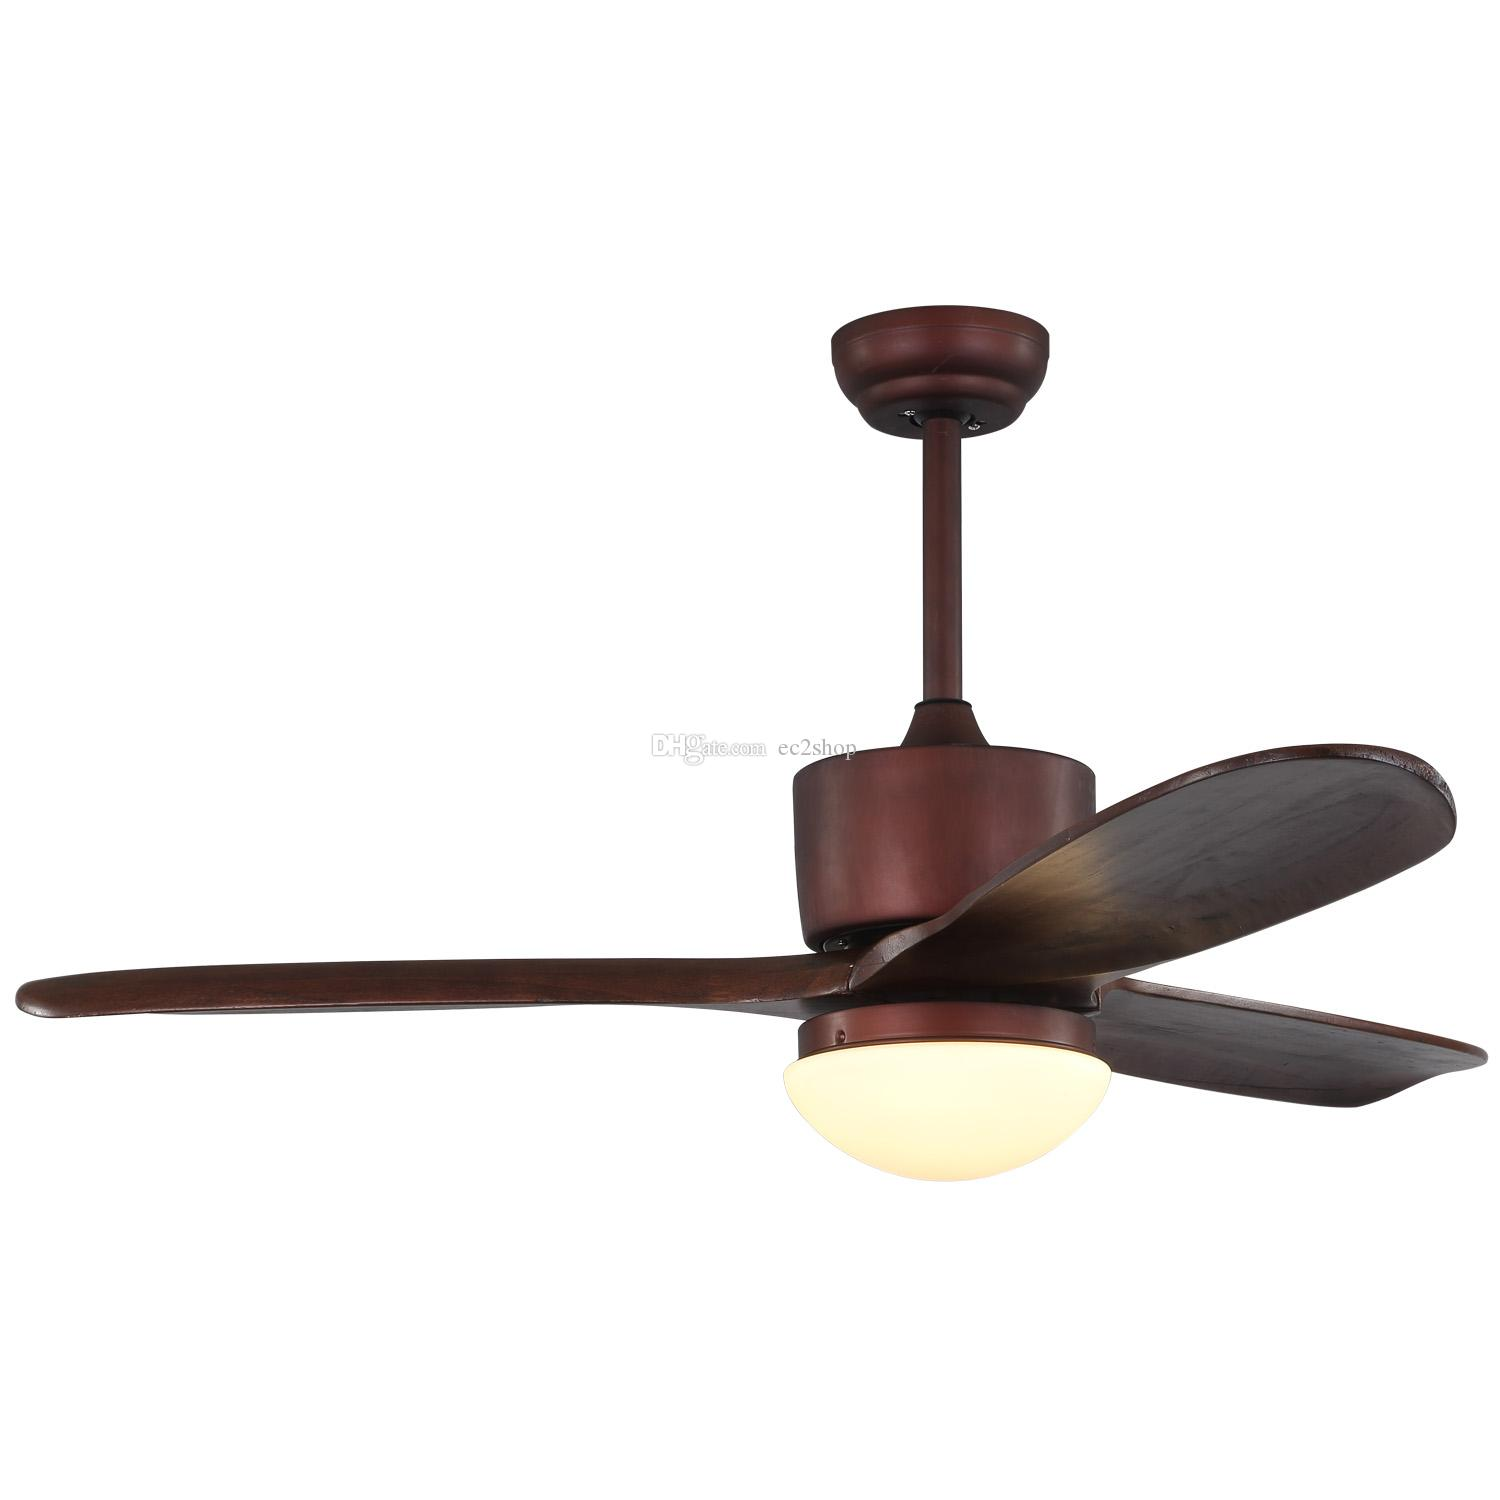 2018 china 48 inch ceiling fan with light and remote control ac dc 2018 china 48 inch ceiling fan with light and remote control ac dc for bedroom living room on sale from ec2shop 1207 dhgate aloadofball Images